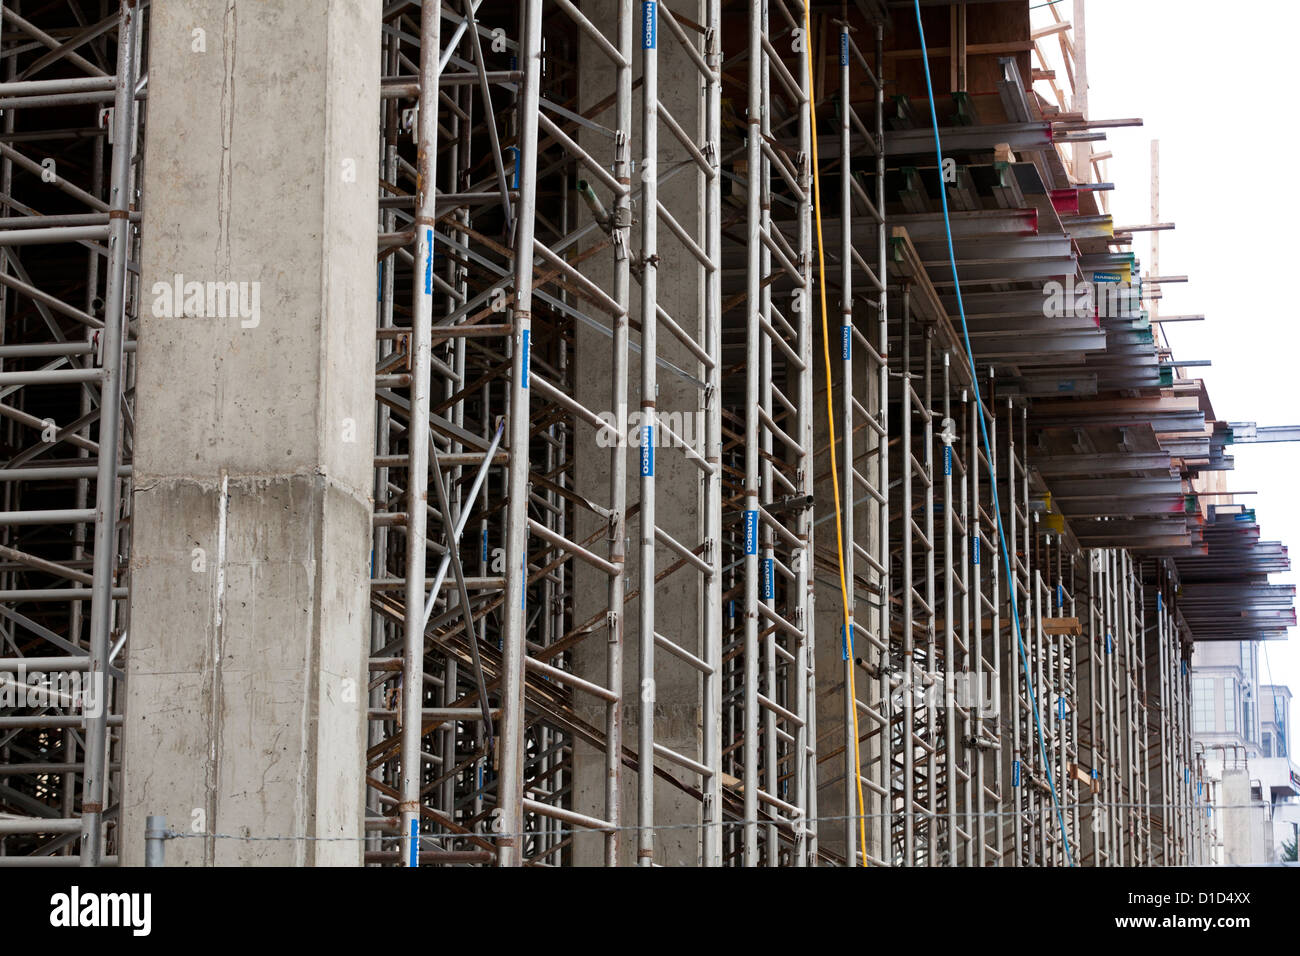 Scaffolding on construction site - Stock Image